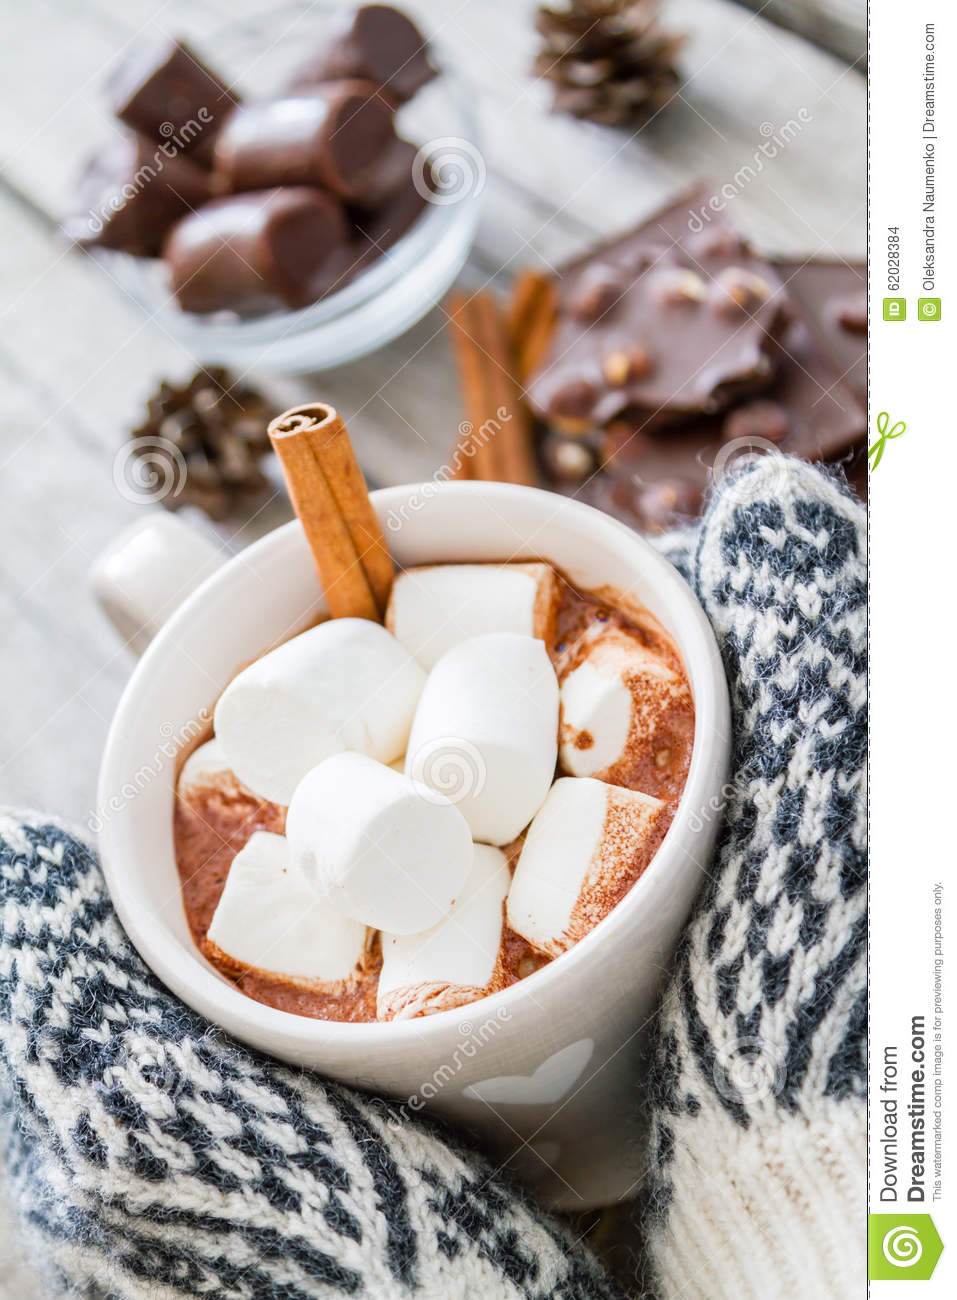 marketing plan sugar free hot cocoa Here's our life essentials cocoaburn fat loss formula review that tries to explain the real link between stomach fat, blood sugar and regulating hormonal imbalances free shipping is available on all domestic orders.